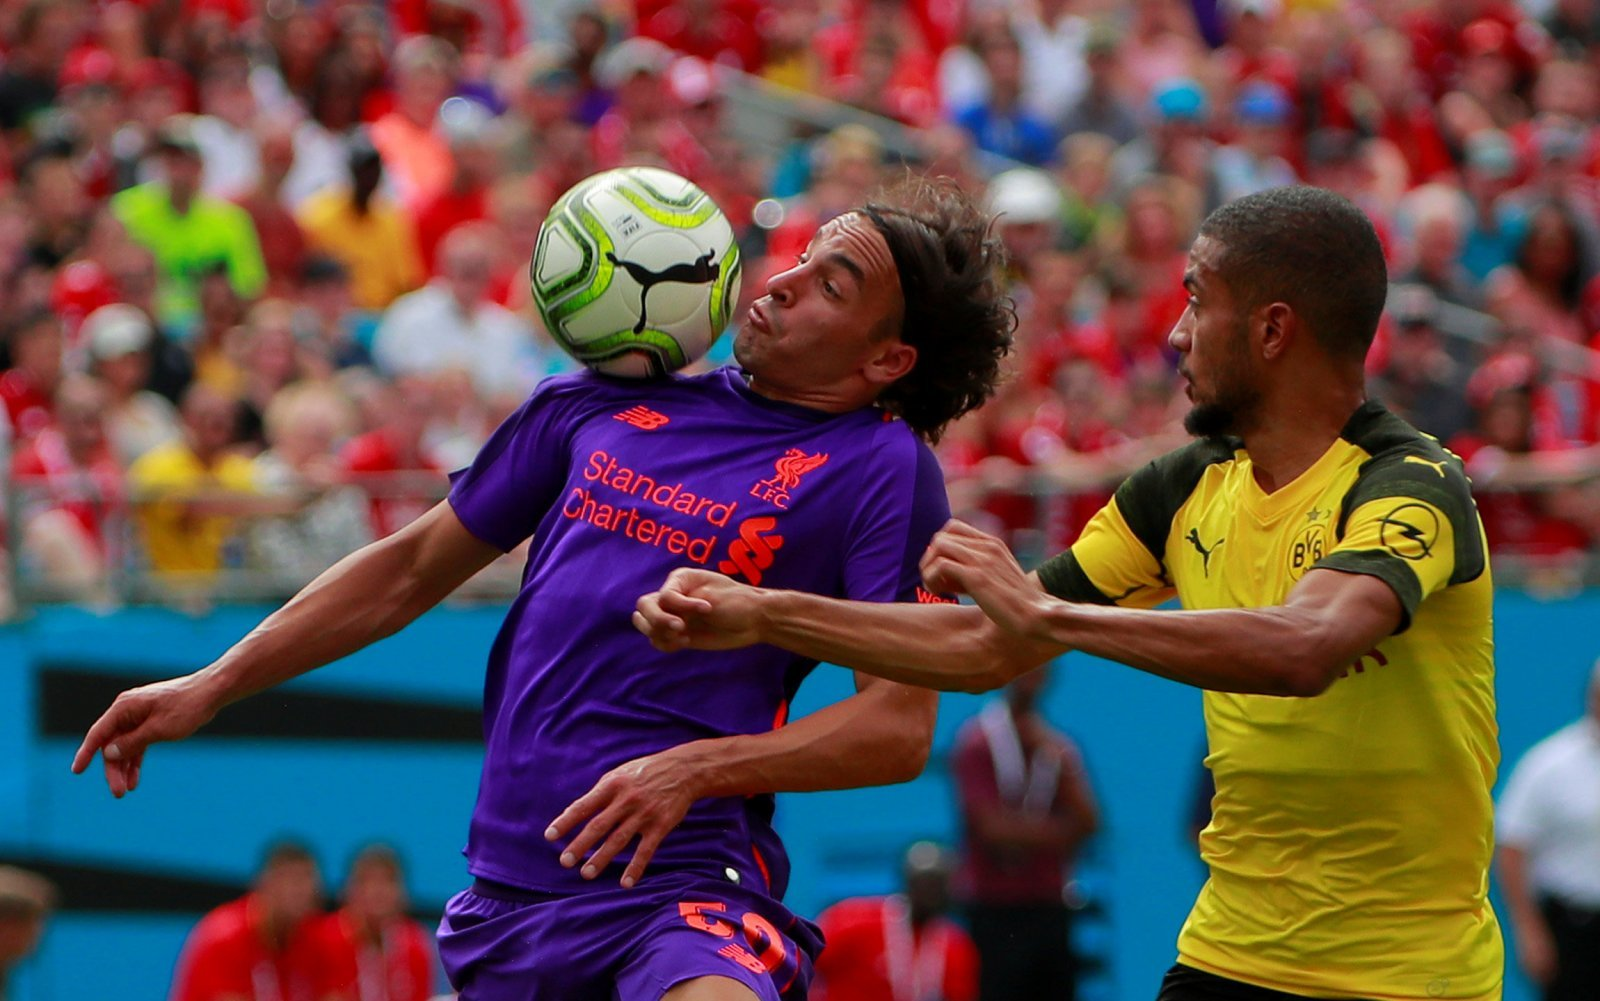 Palace could add much needed depth by signing Markovic